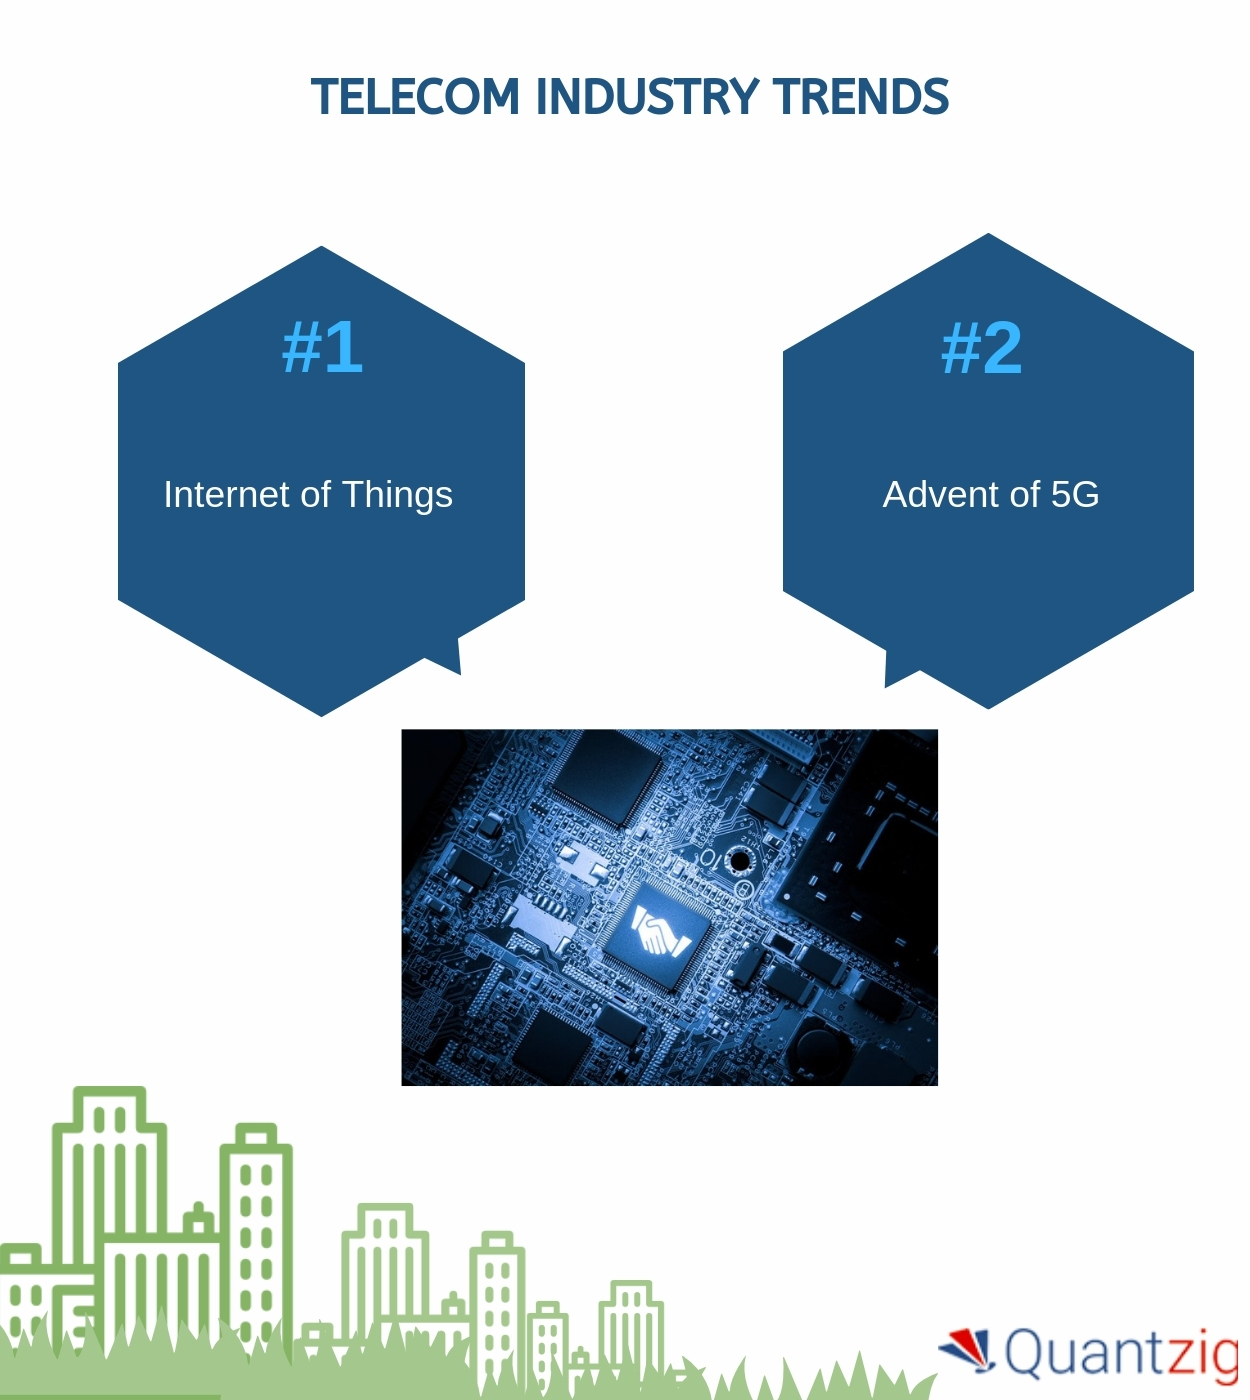 Top Trends Set to Transform the Telecom Industry in 2019 | A